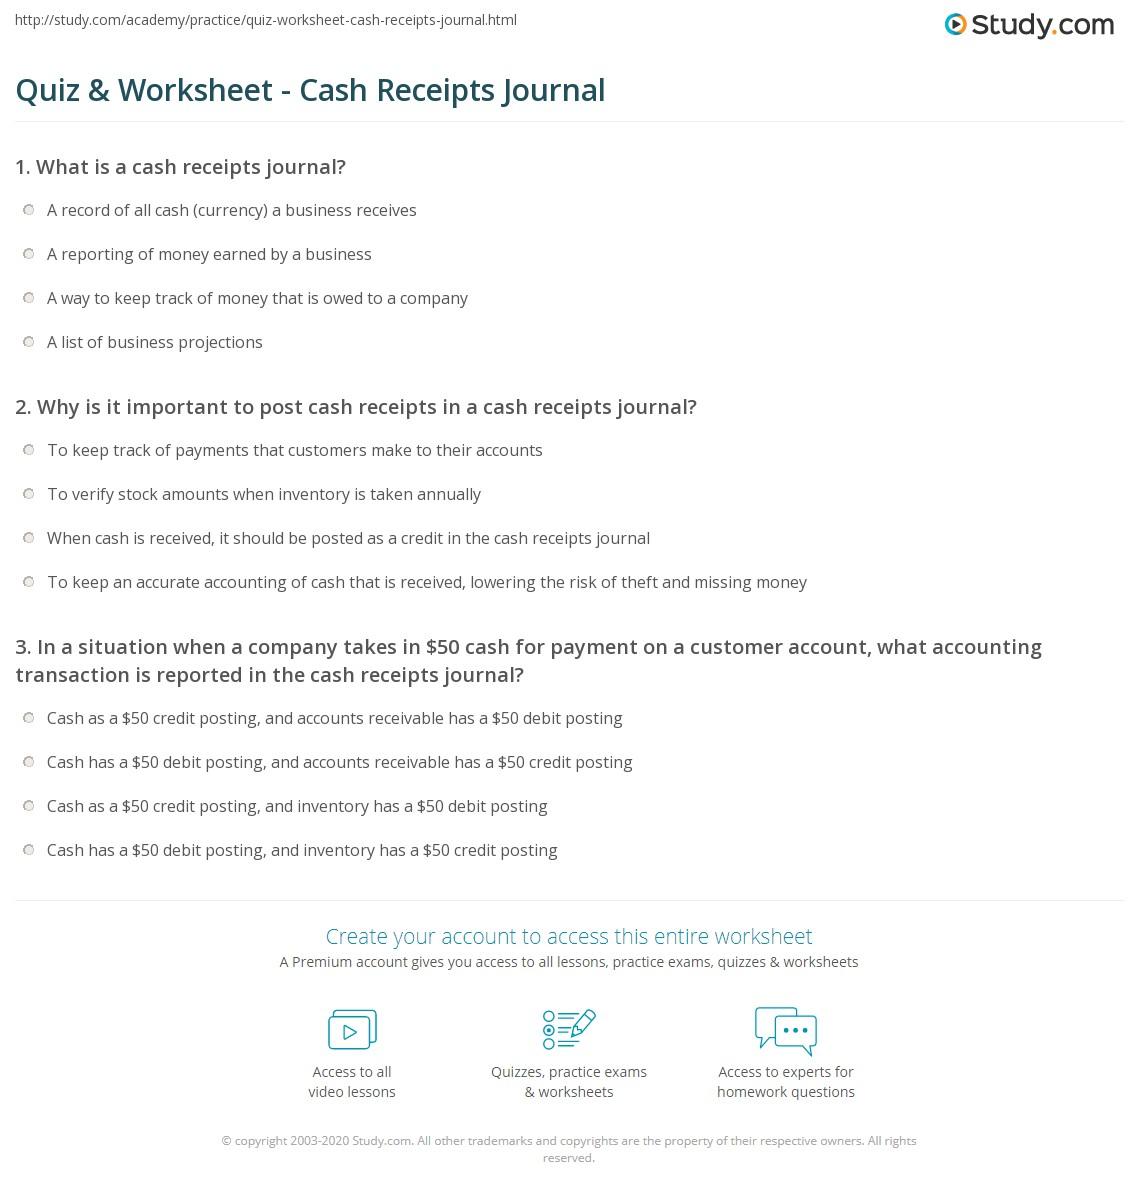 Print Cash Receipts Journal: Definition U0026 Examples Worksheet